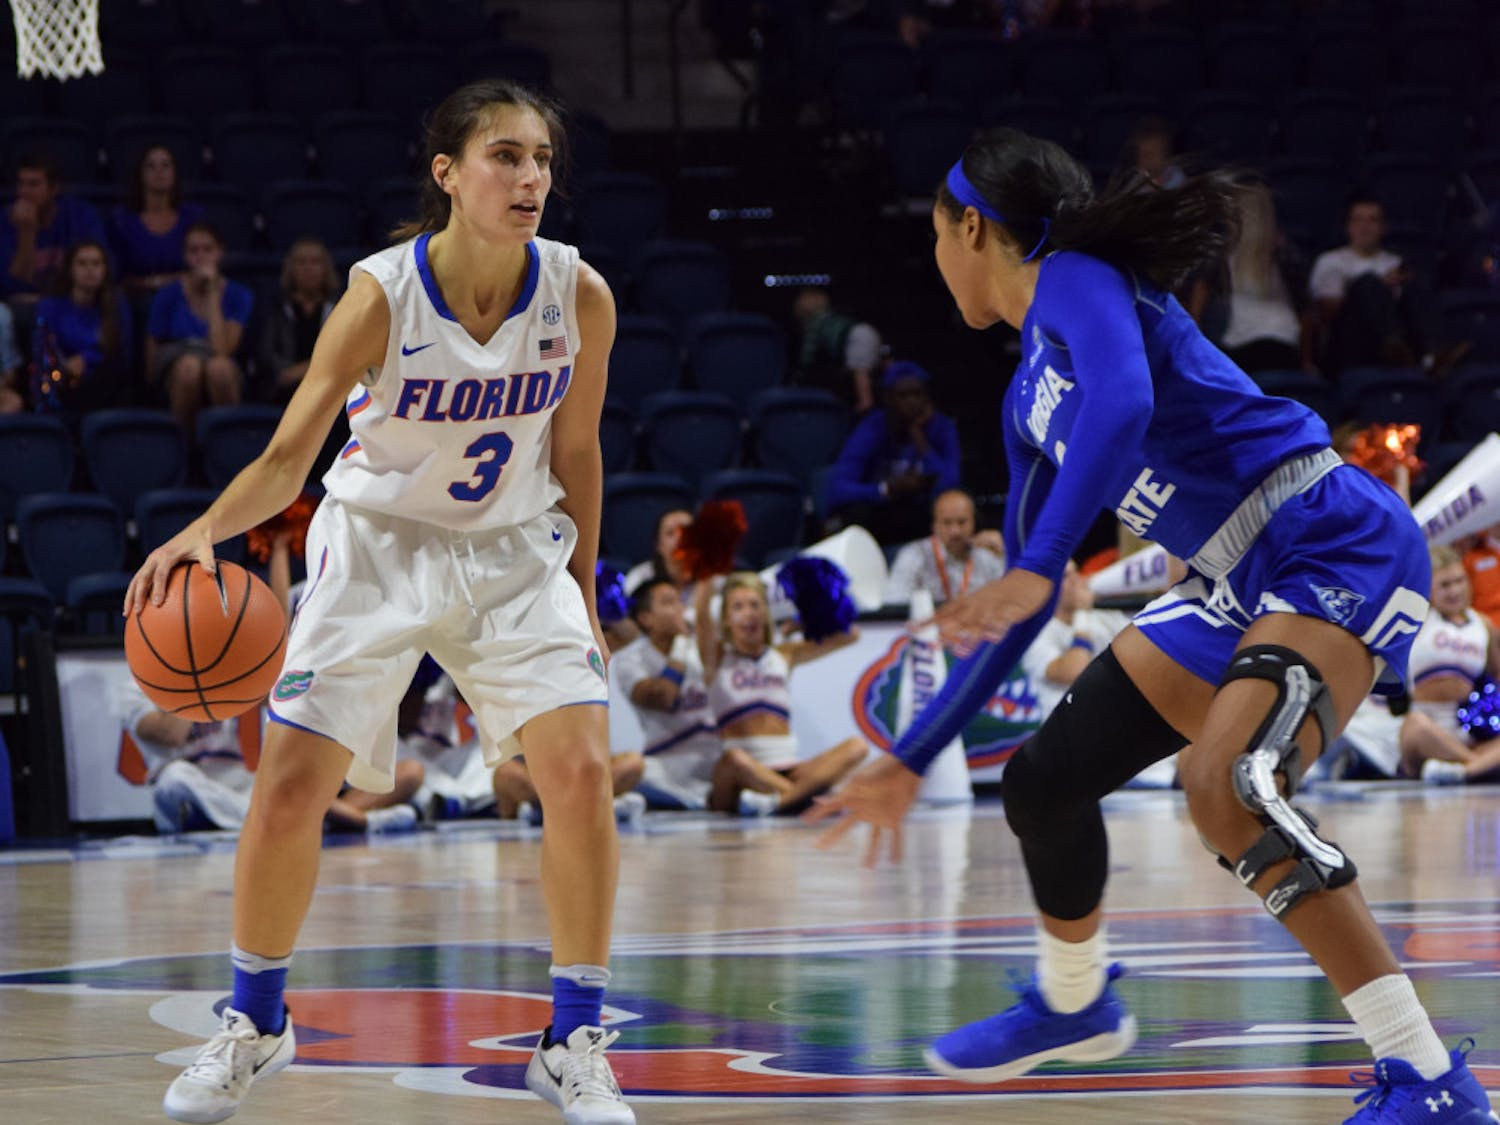 Florida transfer guard Funda Nakkasoglu (3) is still bothered by an ankle injury suffered on Nov. 21.